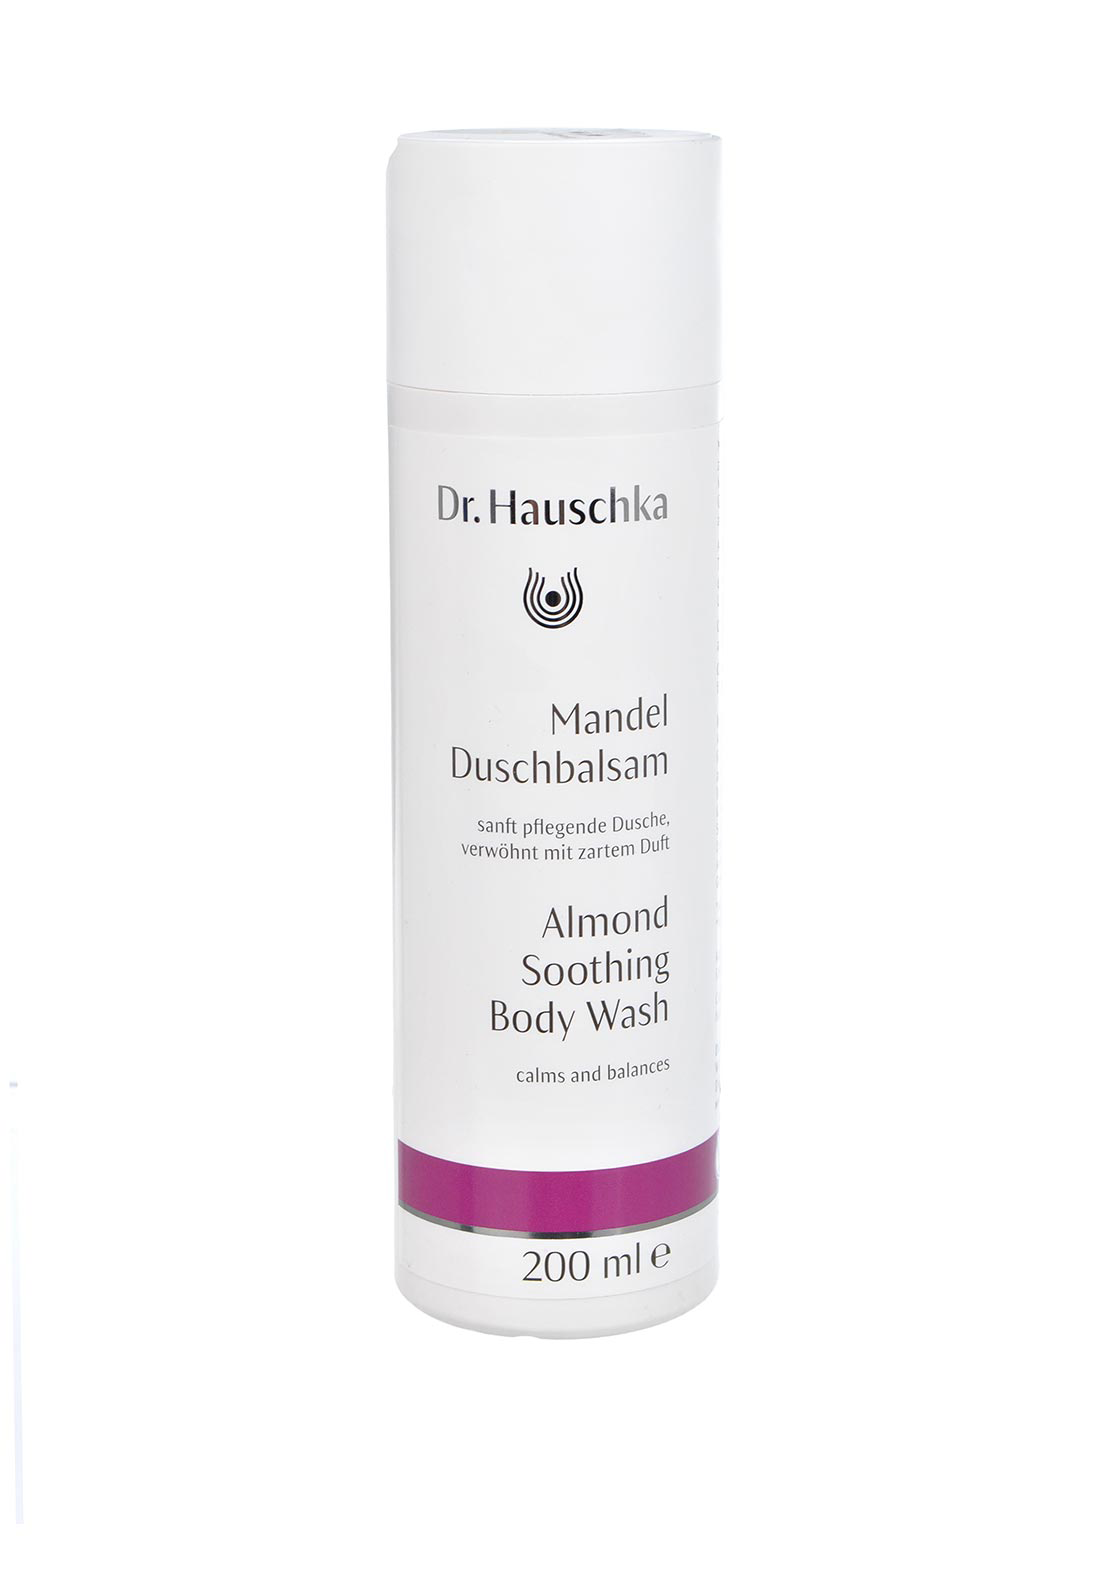 Dr. Hauschka Almond Soothing Body Wash, 200ml